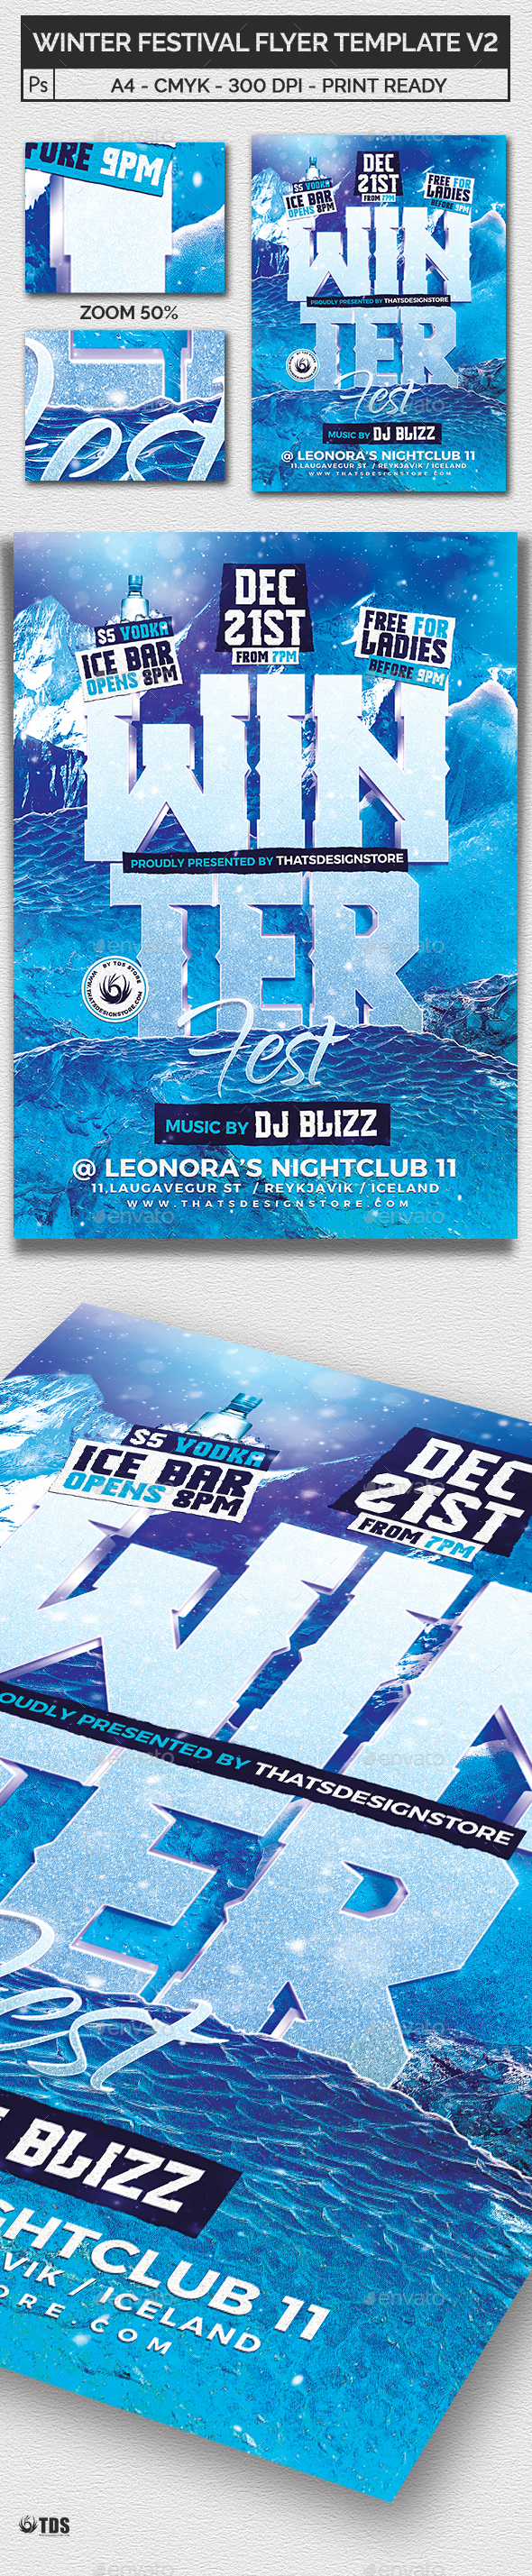 Winter Festival Flyer Template V2 - Clubs & Parties Events